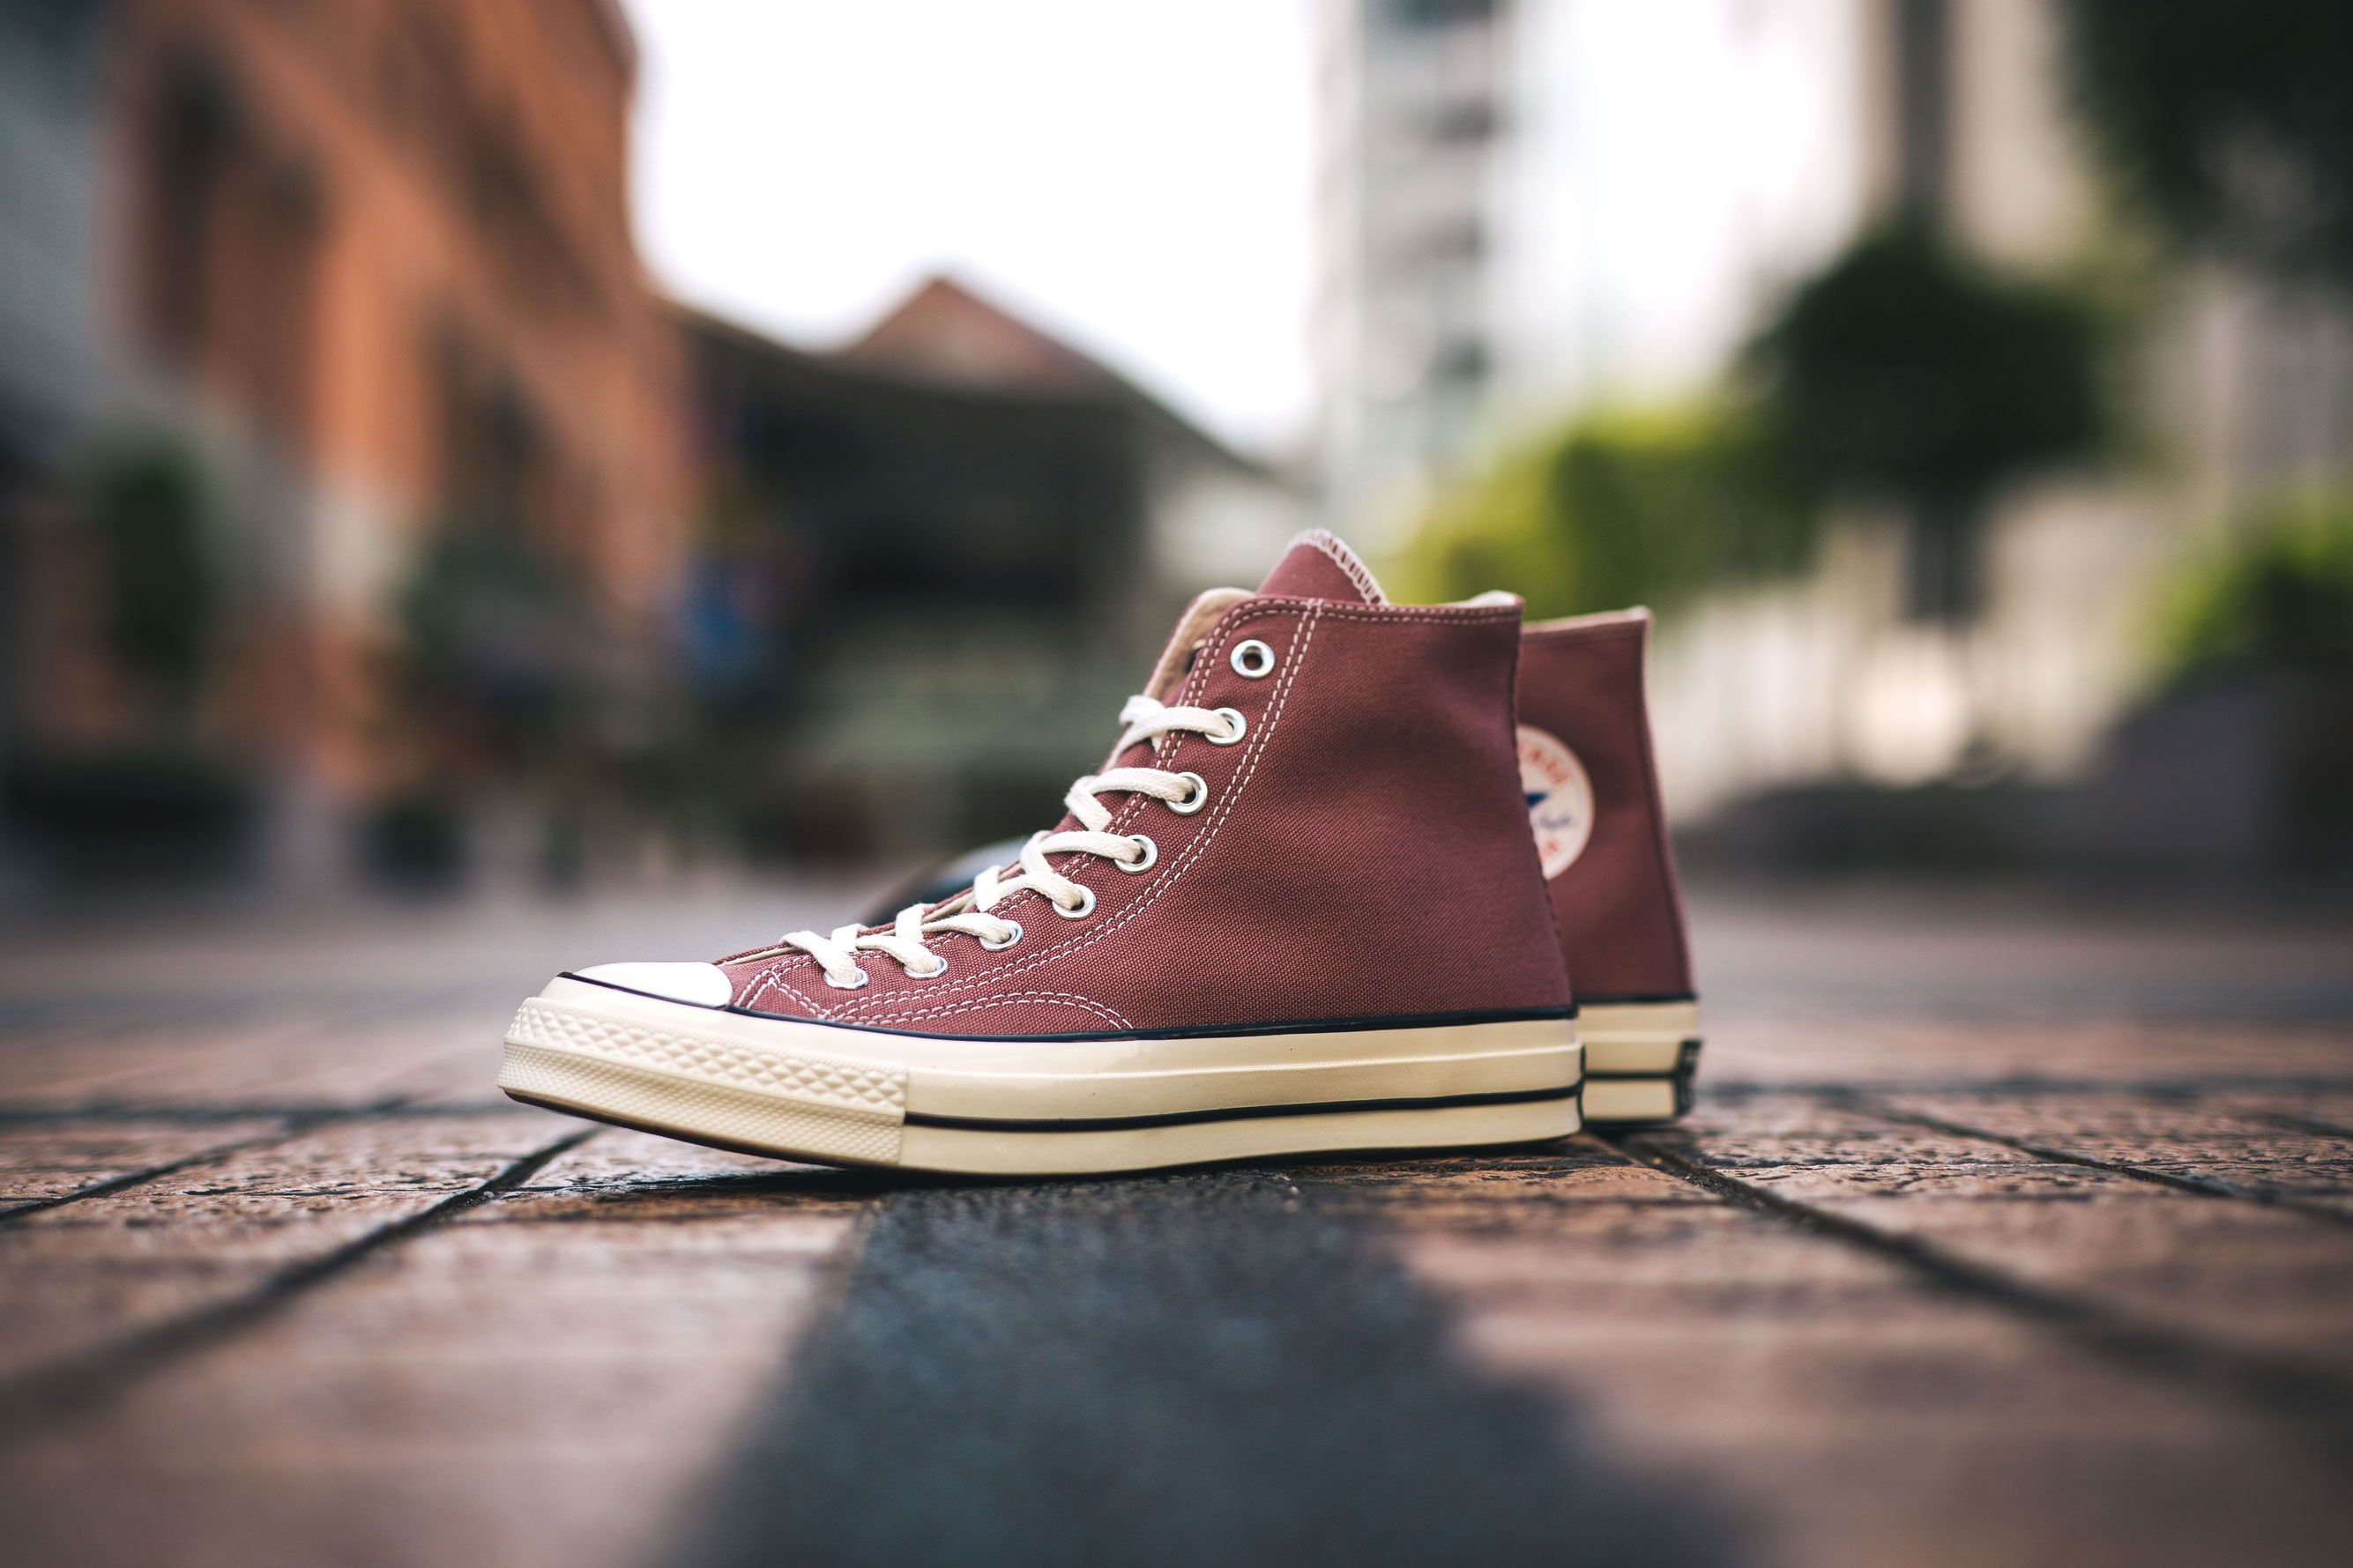 9f54938f1754 The Converse Chuck  70 is re-crafted sneaker that uses modern details to  celebrate the original  ChuckTaylor from the 1970s